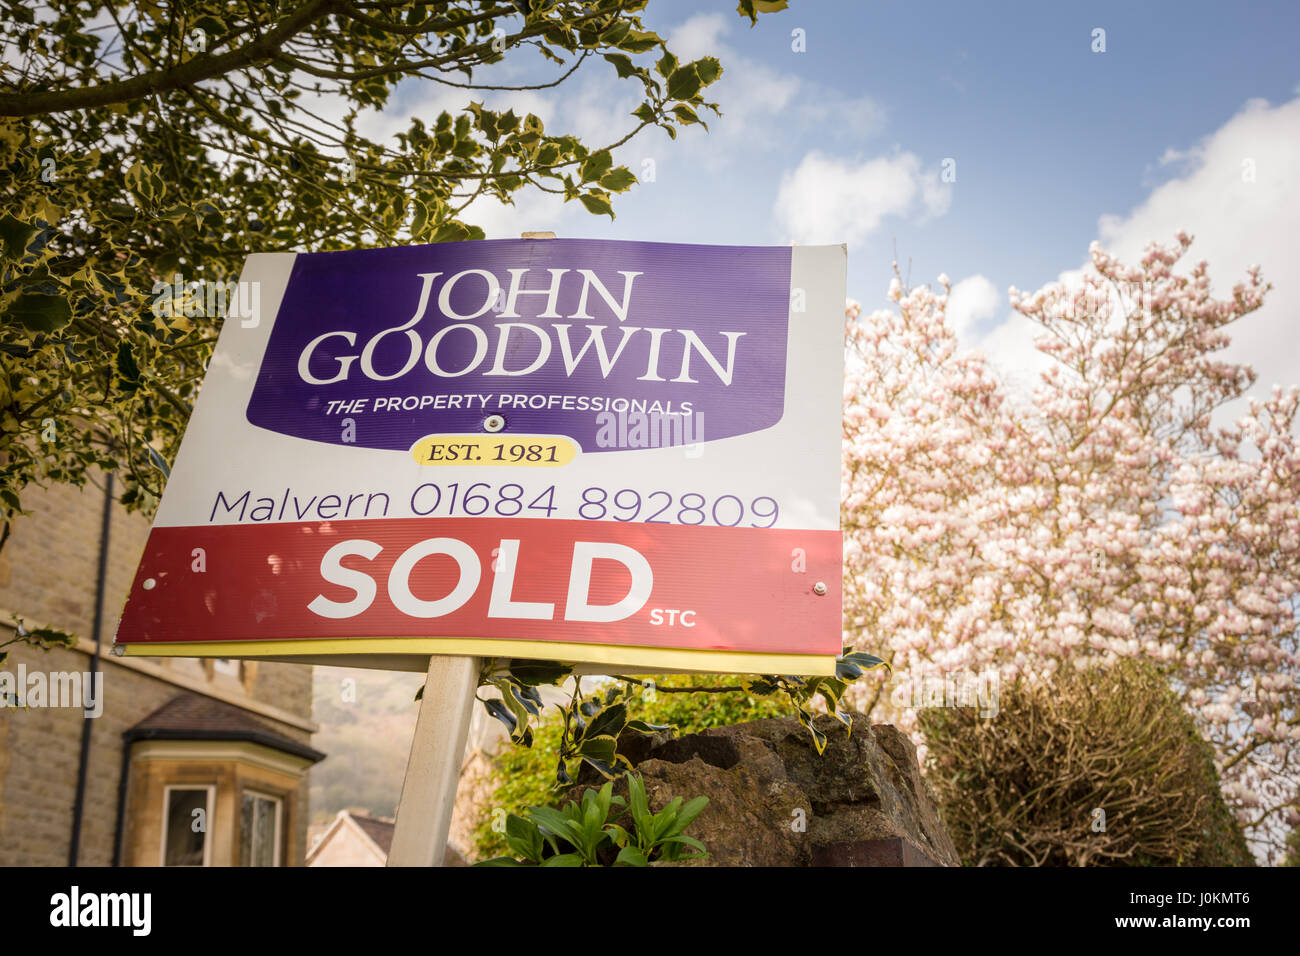 Sold sign outside a property in great Malvern, Worcersteshire, UK Britain estate agent - Stock Image